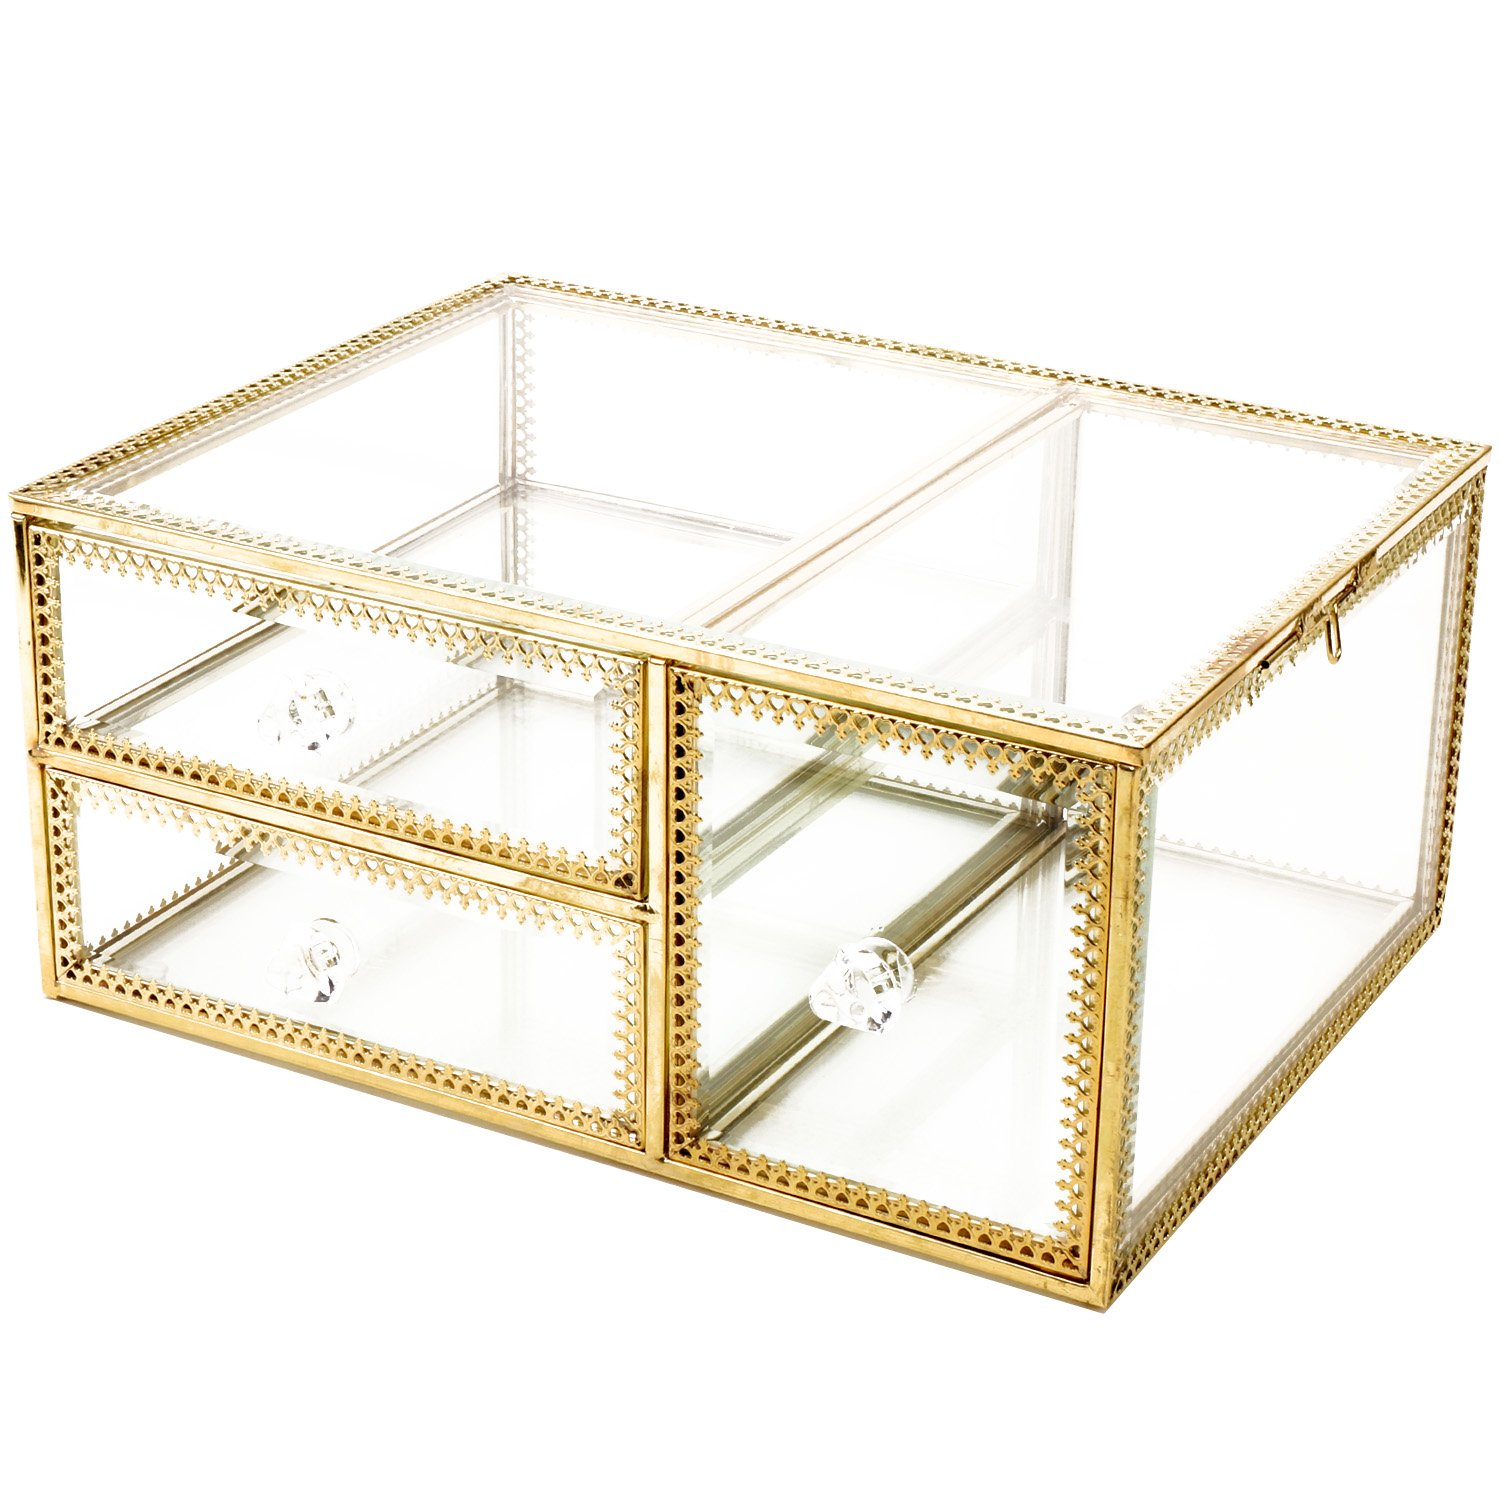 Antique Beauty Display Clear Glass 3Drawers Palette Organizer,Cosmetic Storage, Makeup Container 3Cube Hoder/Beauty Dresser Vanity Cabinet Decorative Keepsake Box